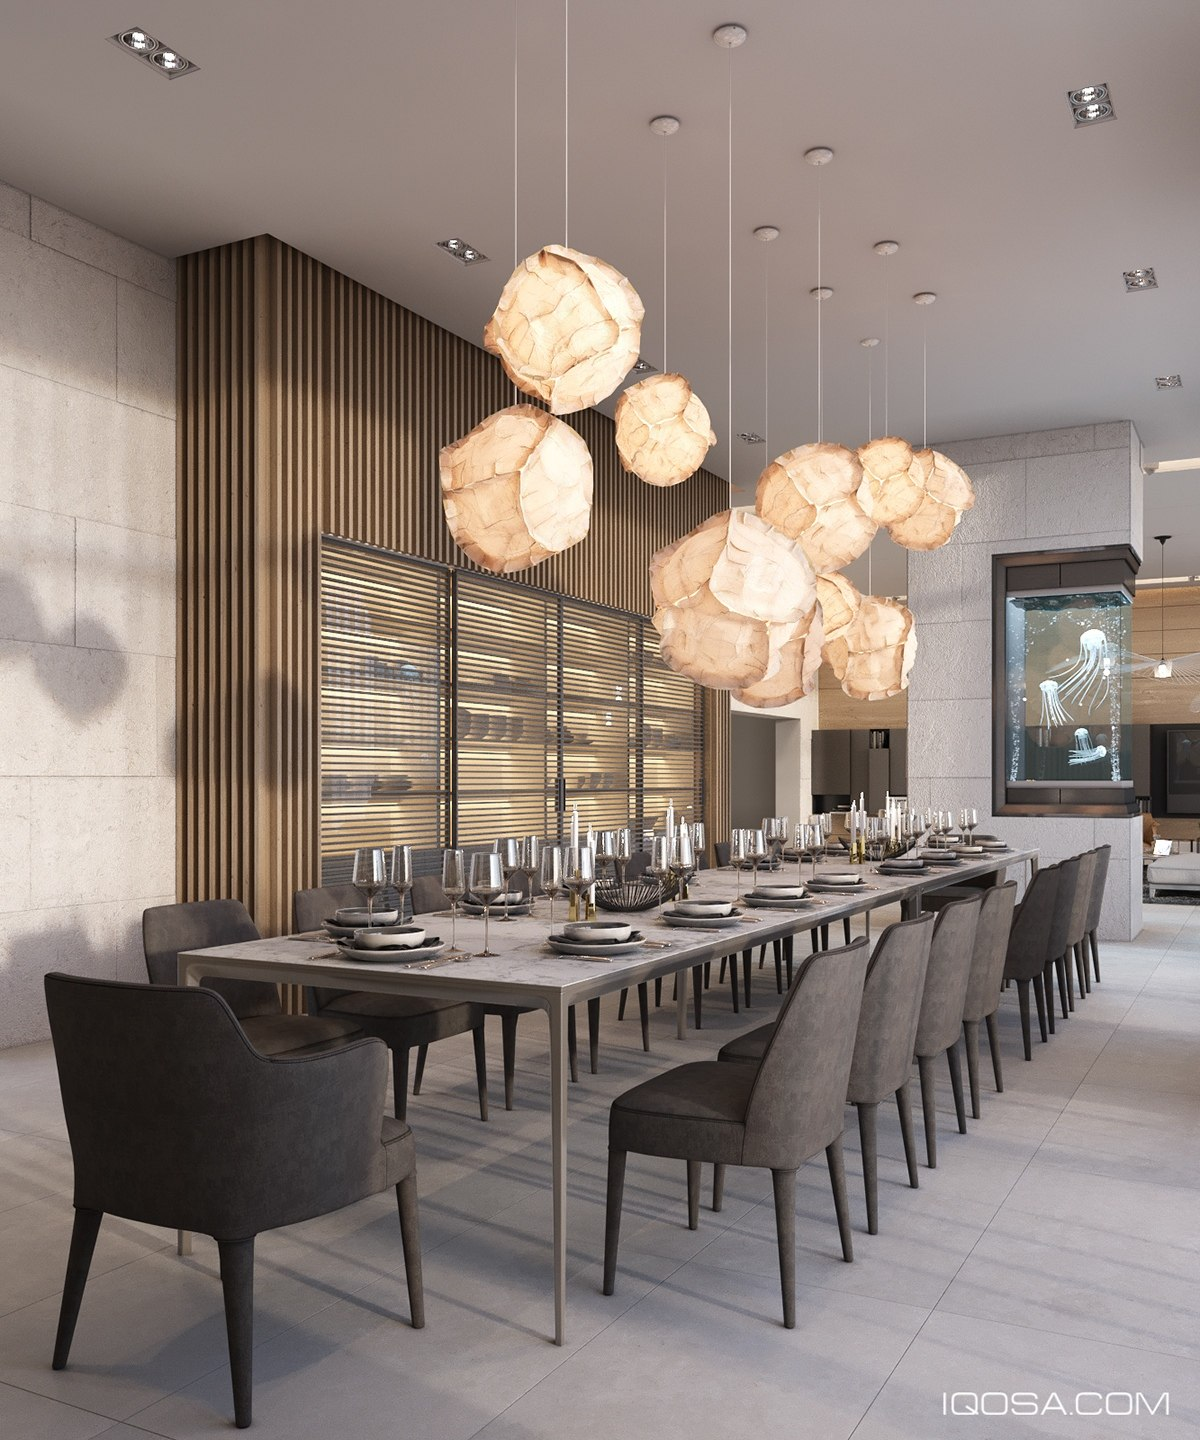 Impressive Dining Table With Jellyfish Aquarium - A sophisticated home with natural themes outside of kiev